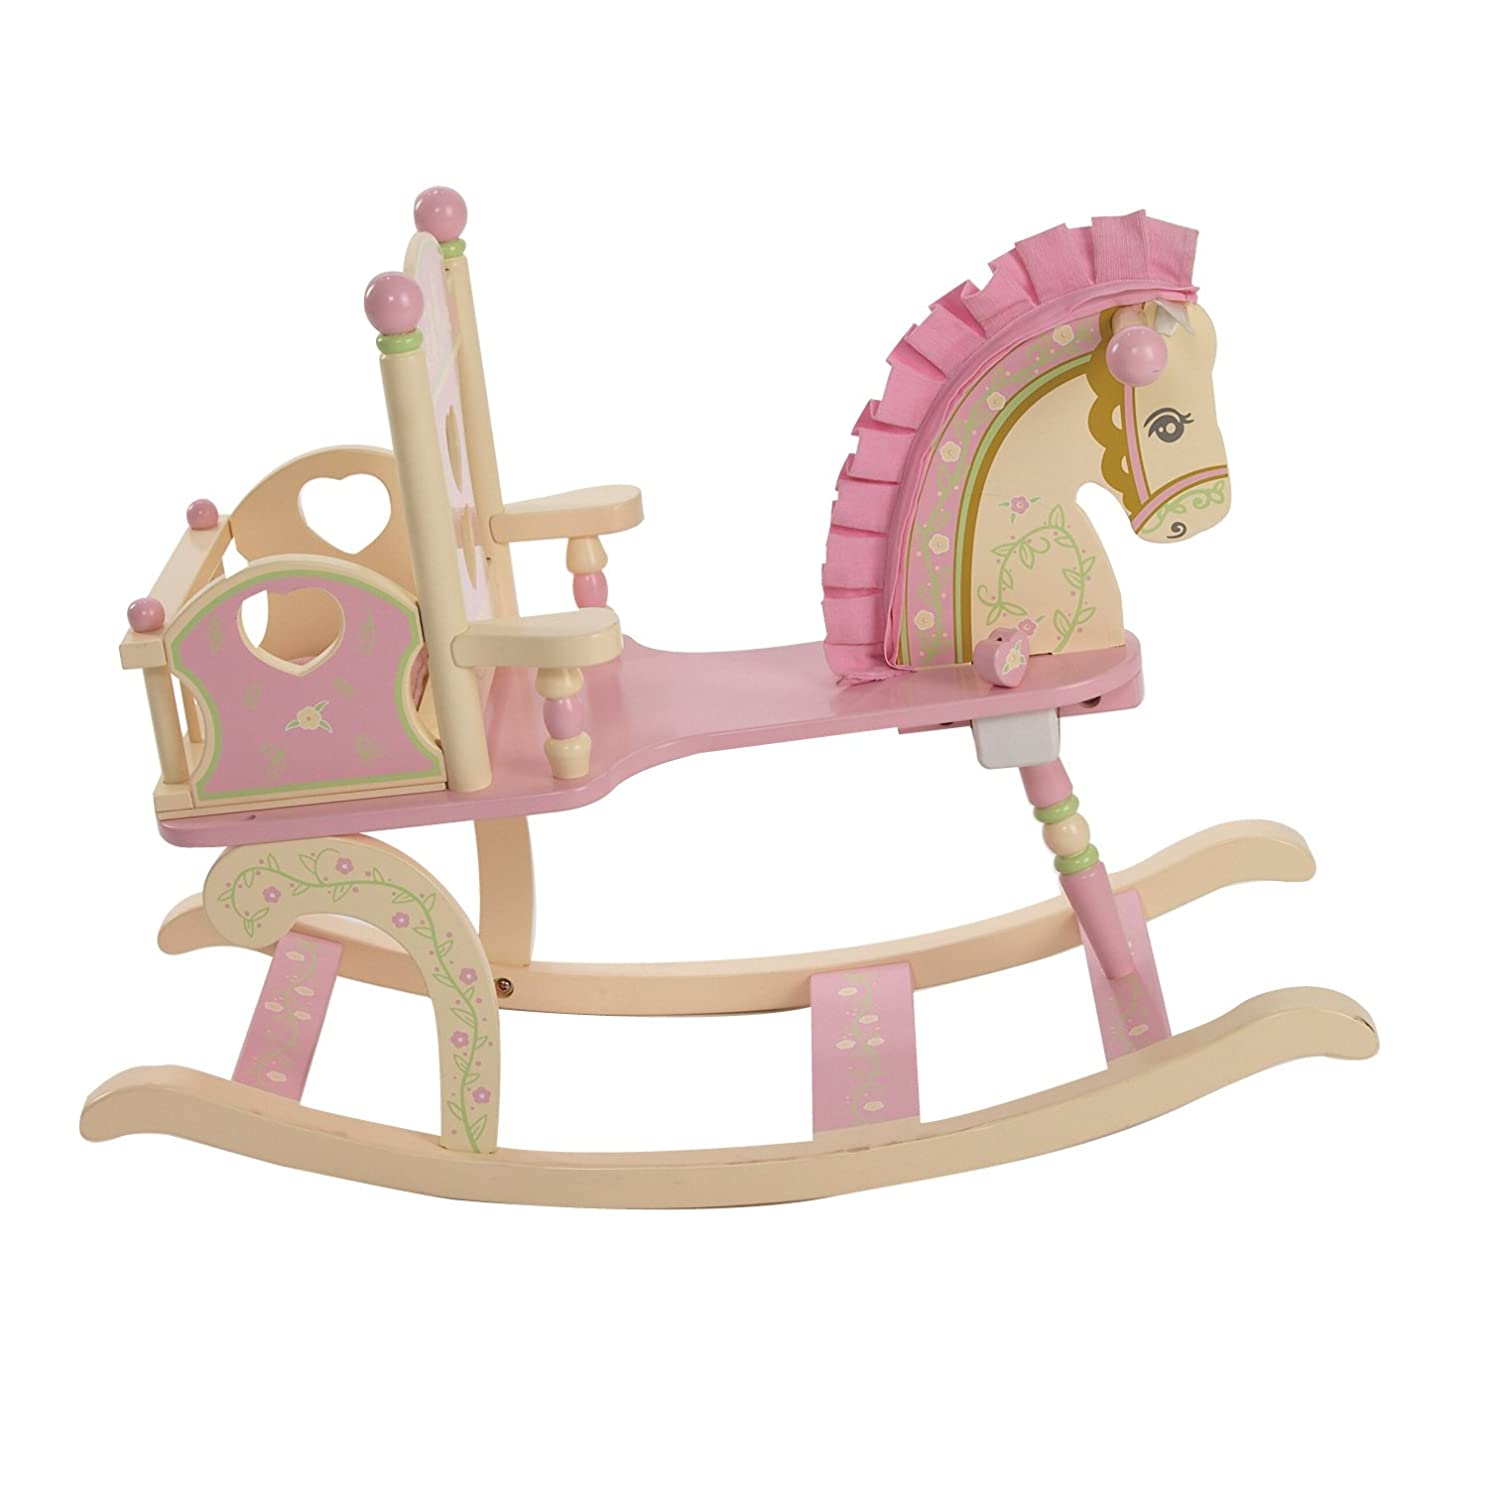 Amazon Wildkin Rock A My Baby Rocking Horse Toys & Games